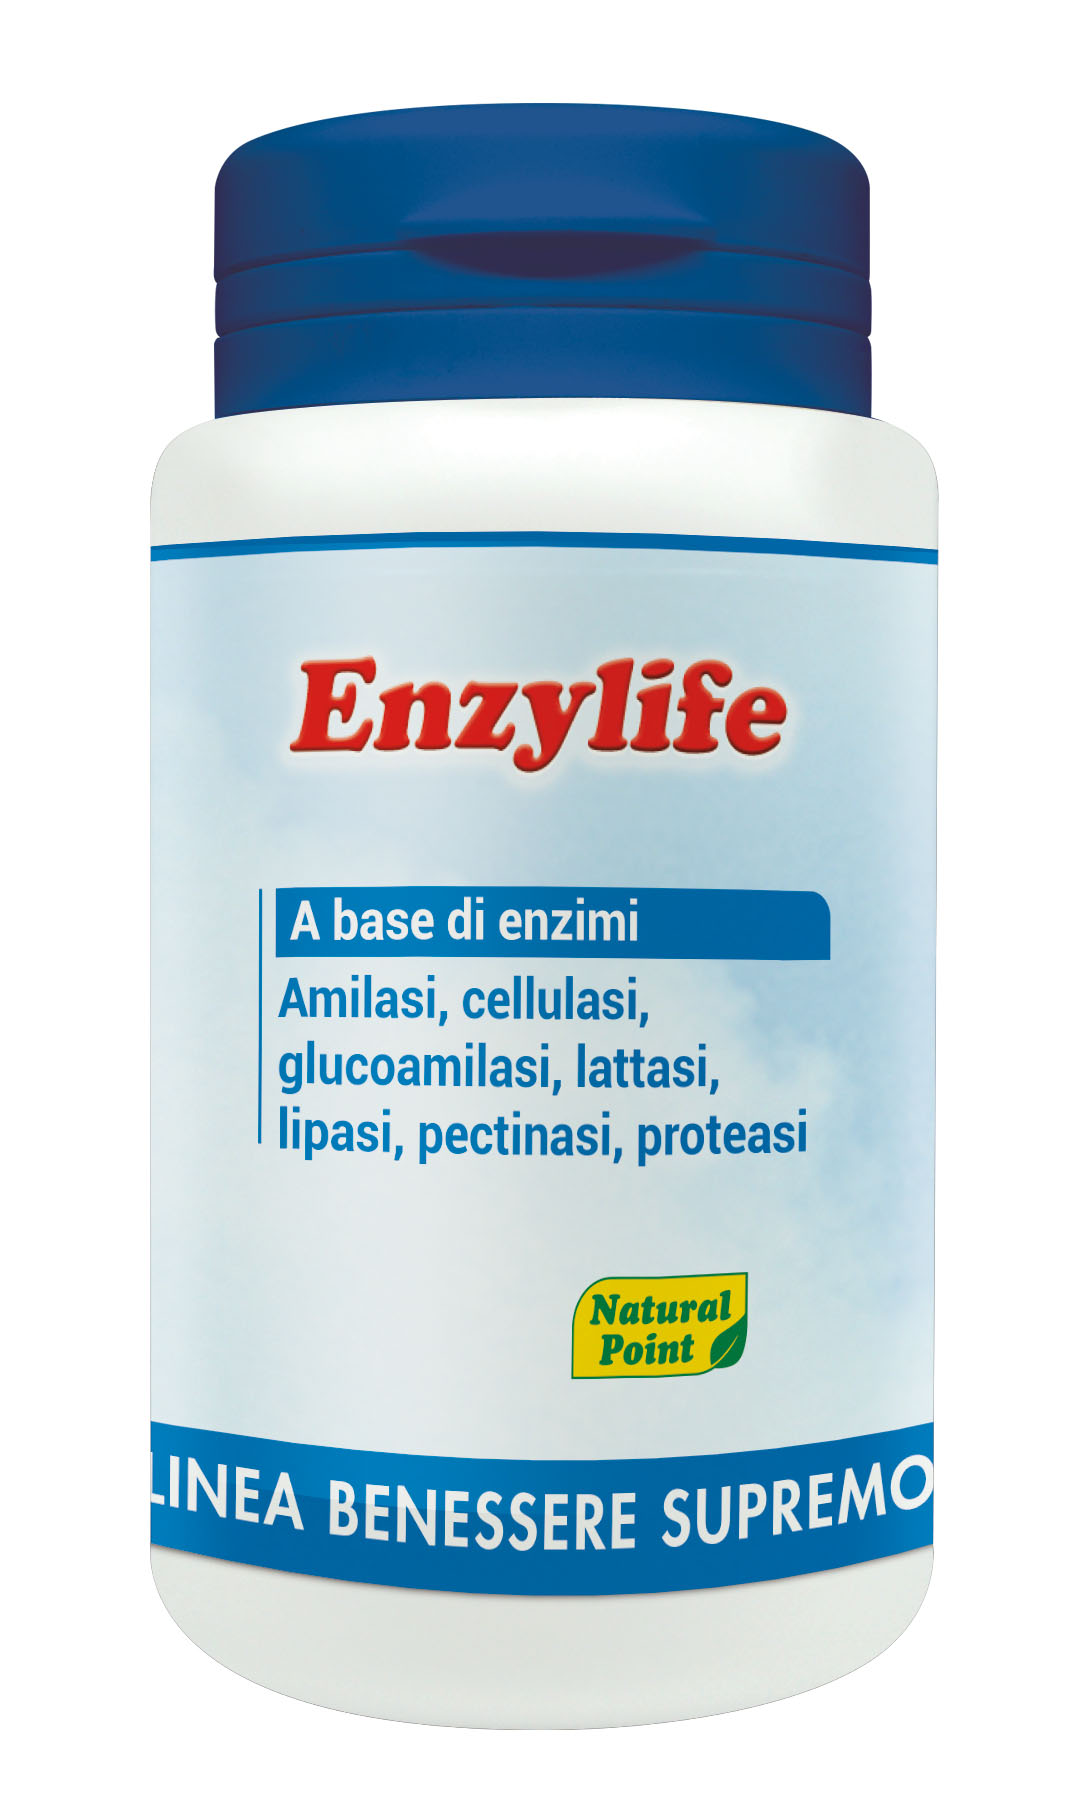 Enzylife Linea Benessere Supremo Natural Point 120 Capsule